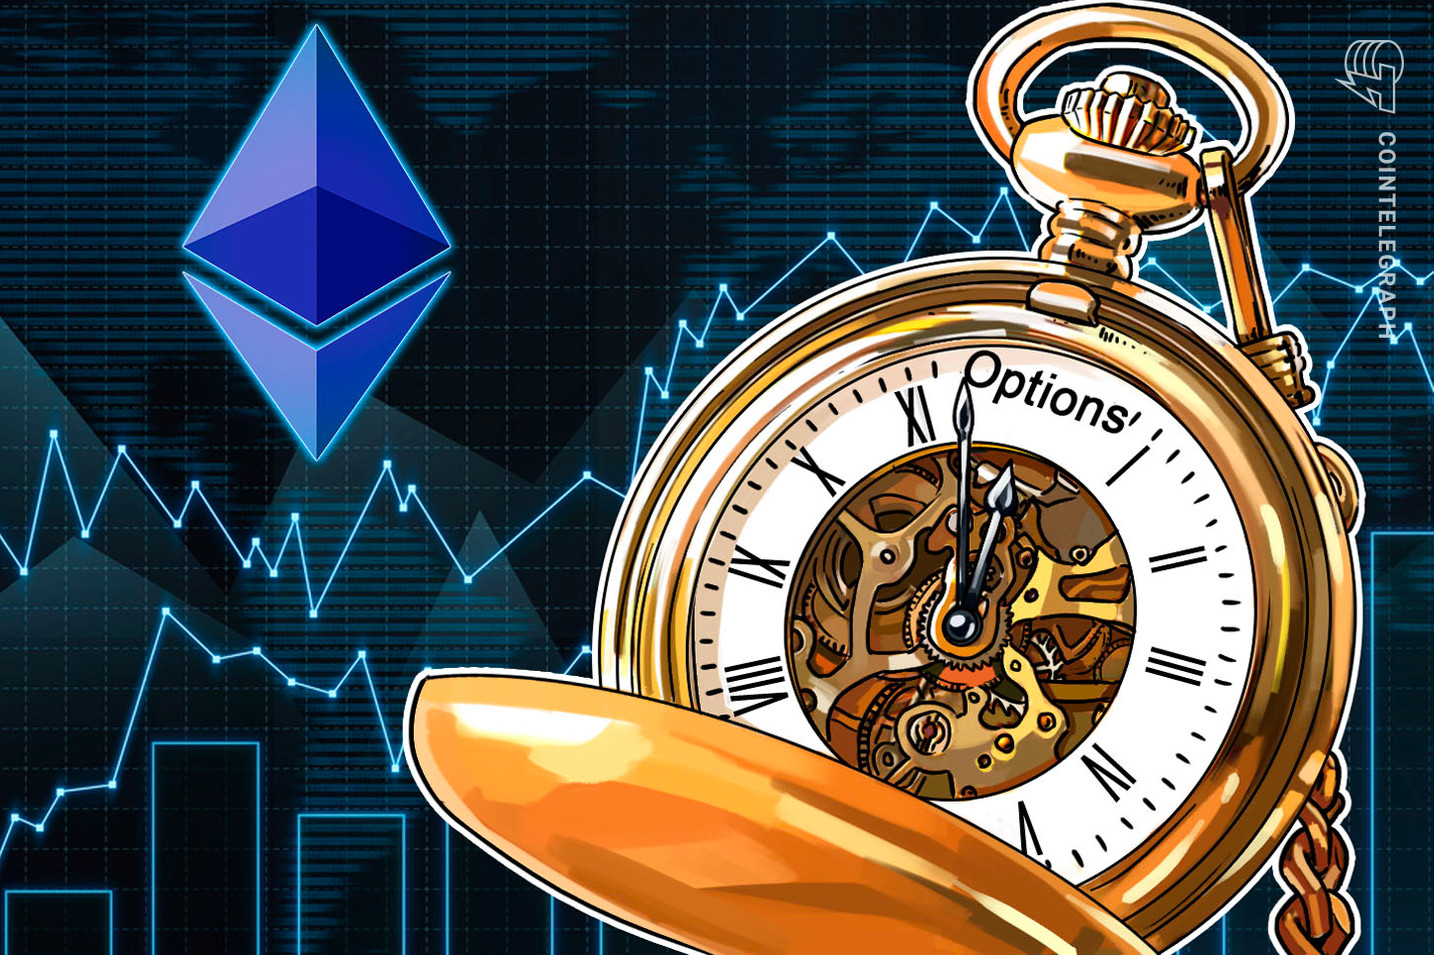 Ethereum's $1.5B options expiry on June 25 will be a make-or-break moment